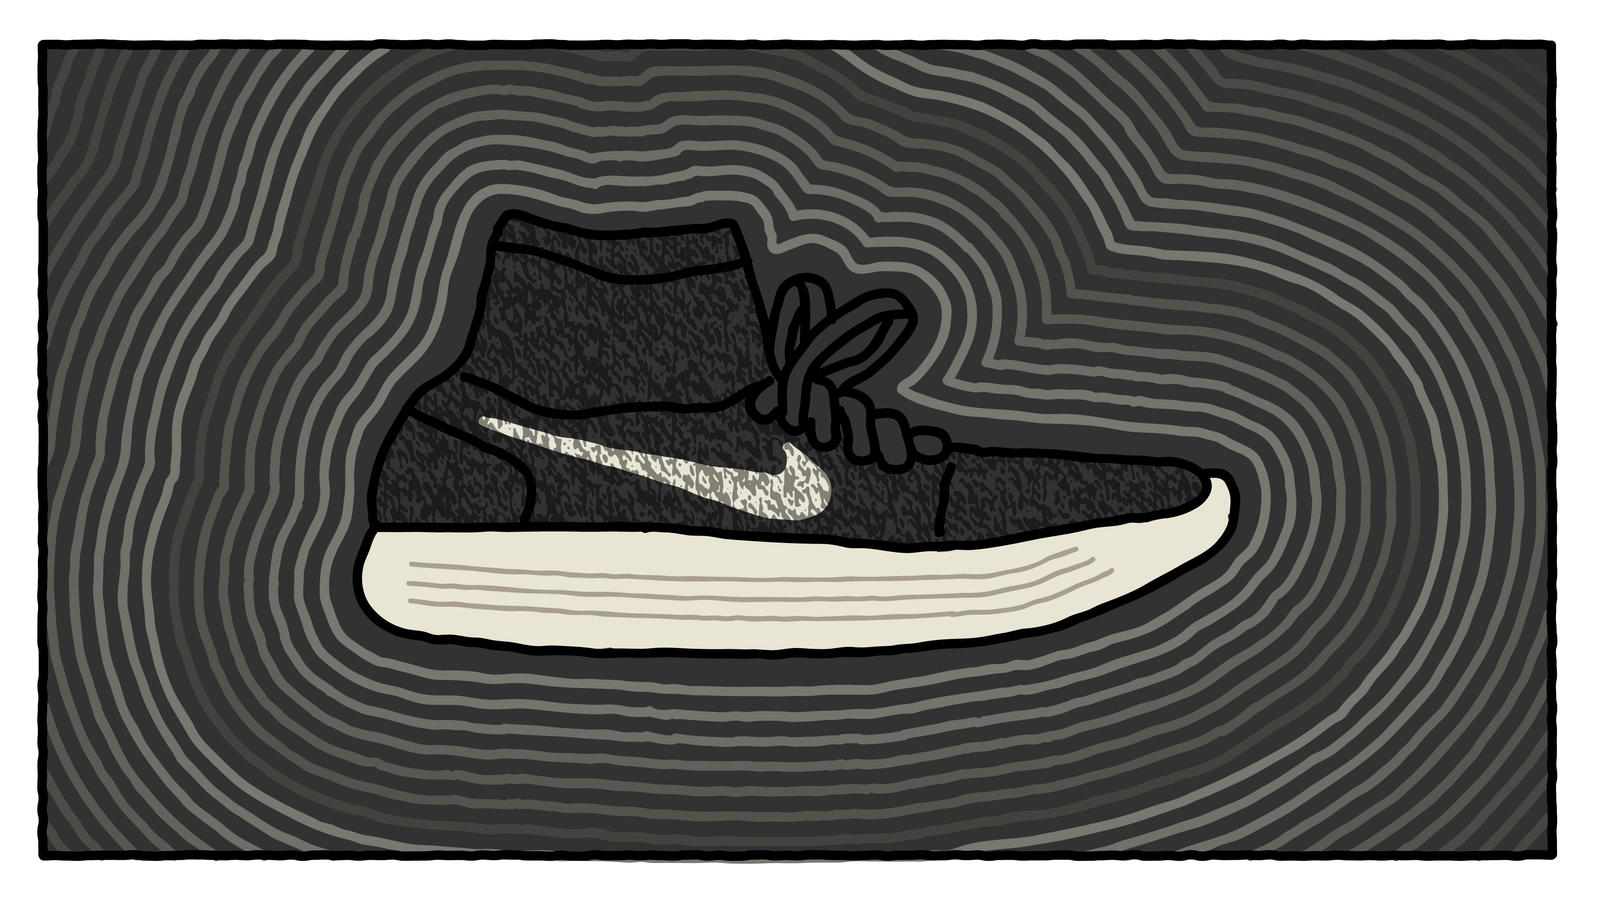 A visual history of Nike Flyknit